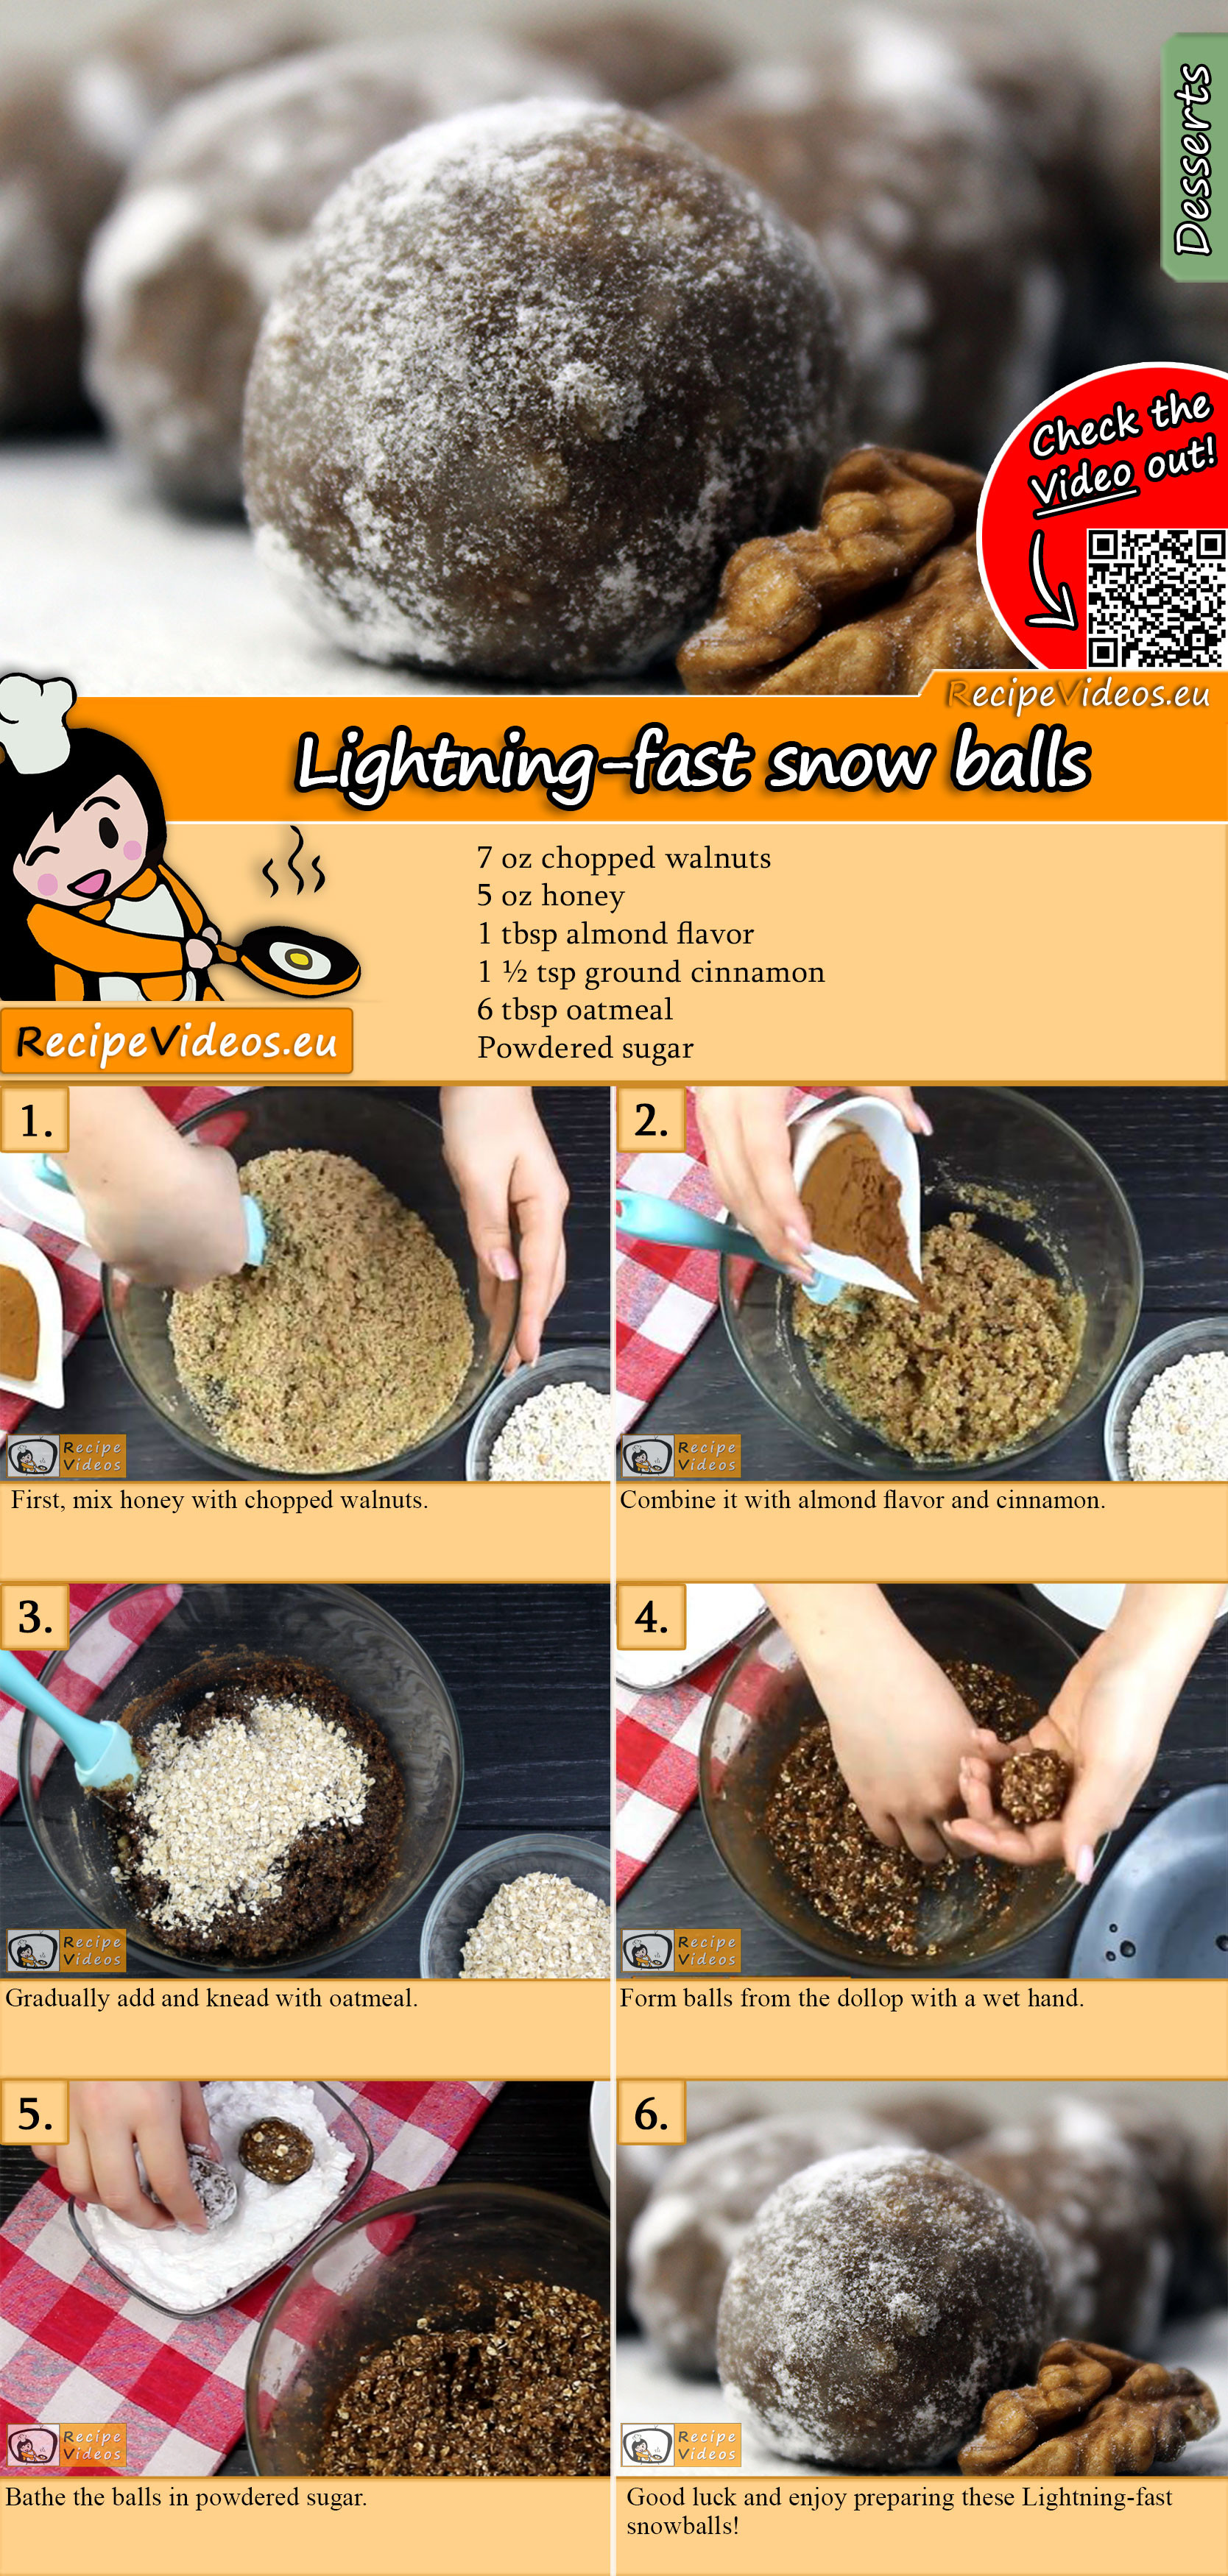 Lightning-fast snow balls recipe with video